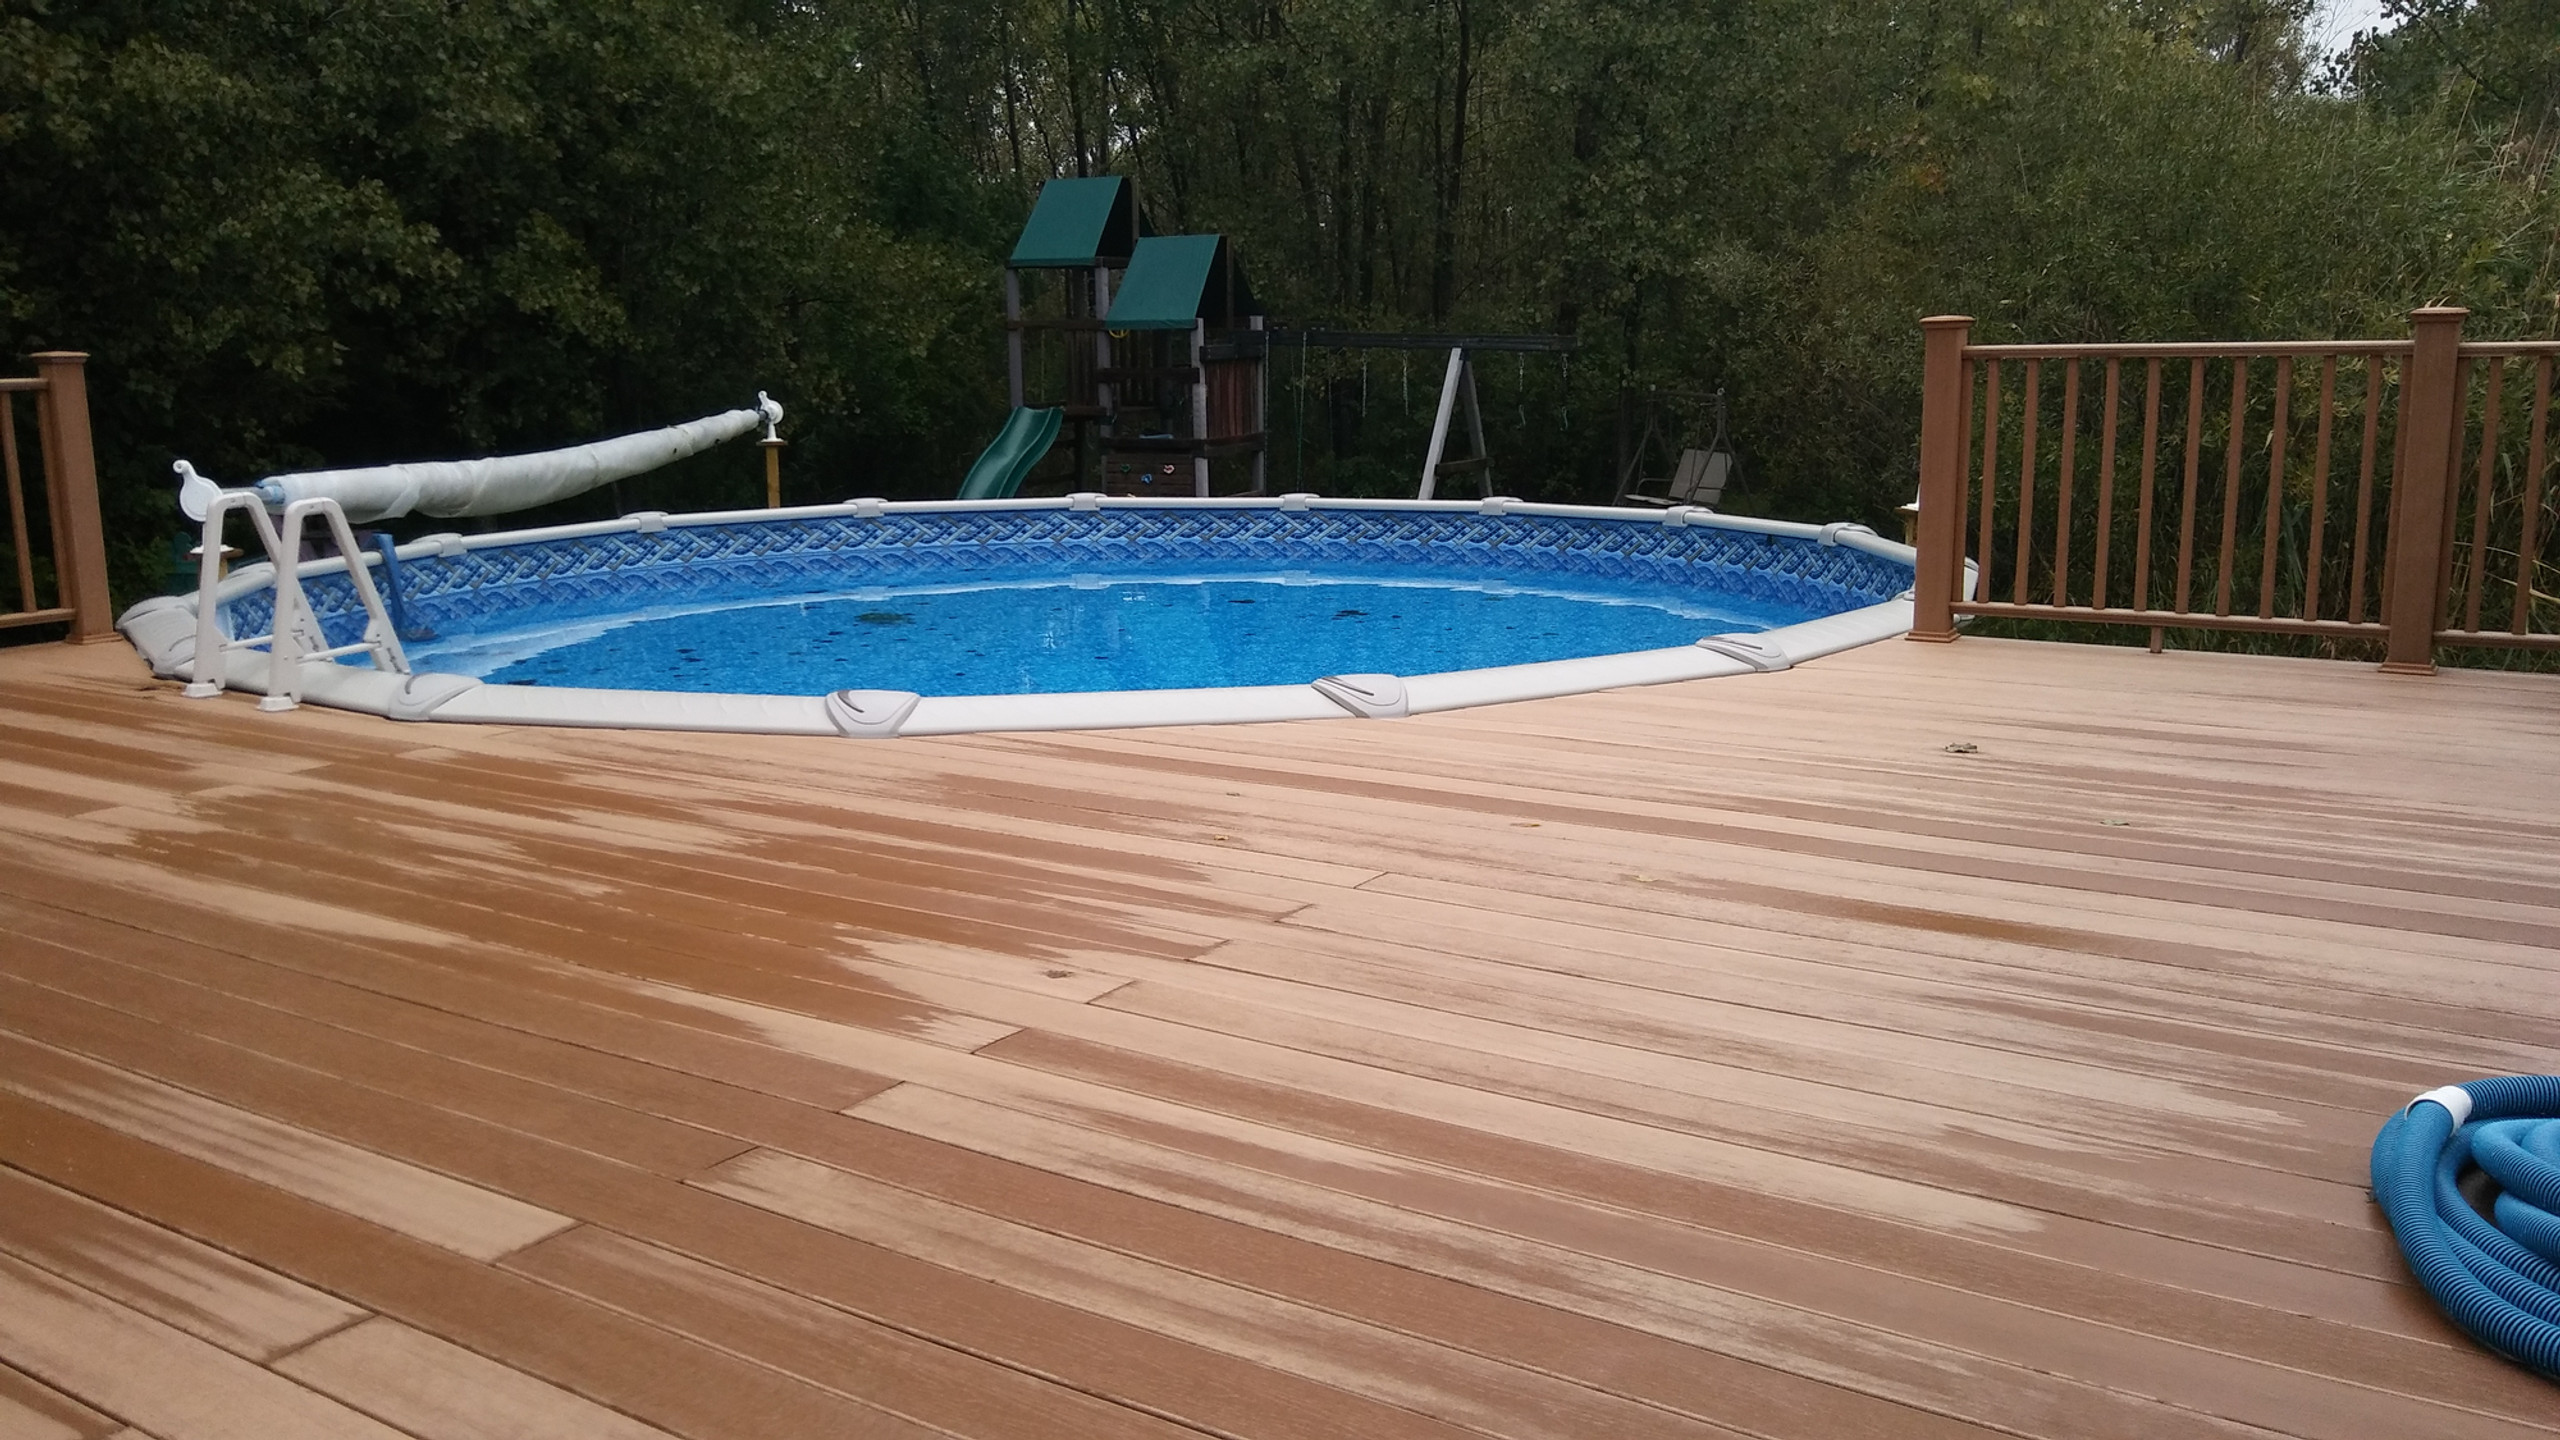 This 27' Round Evolution Above Ground Pool from Pool Pros was built in Suamico, WI in 2016